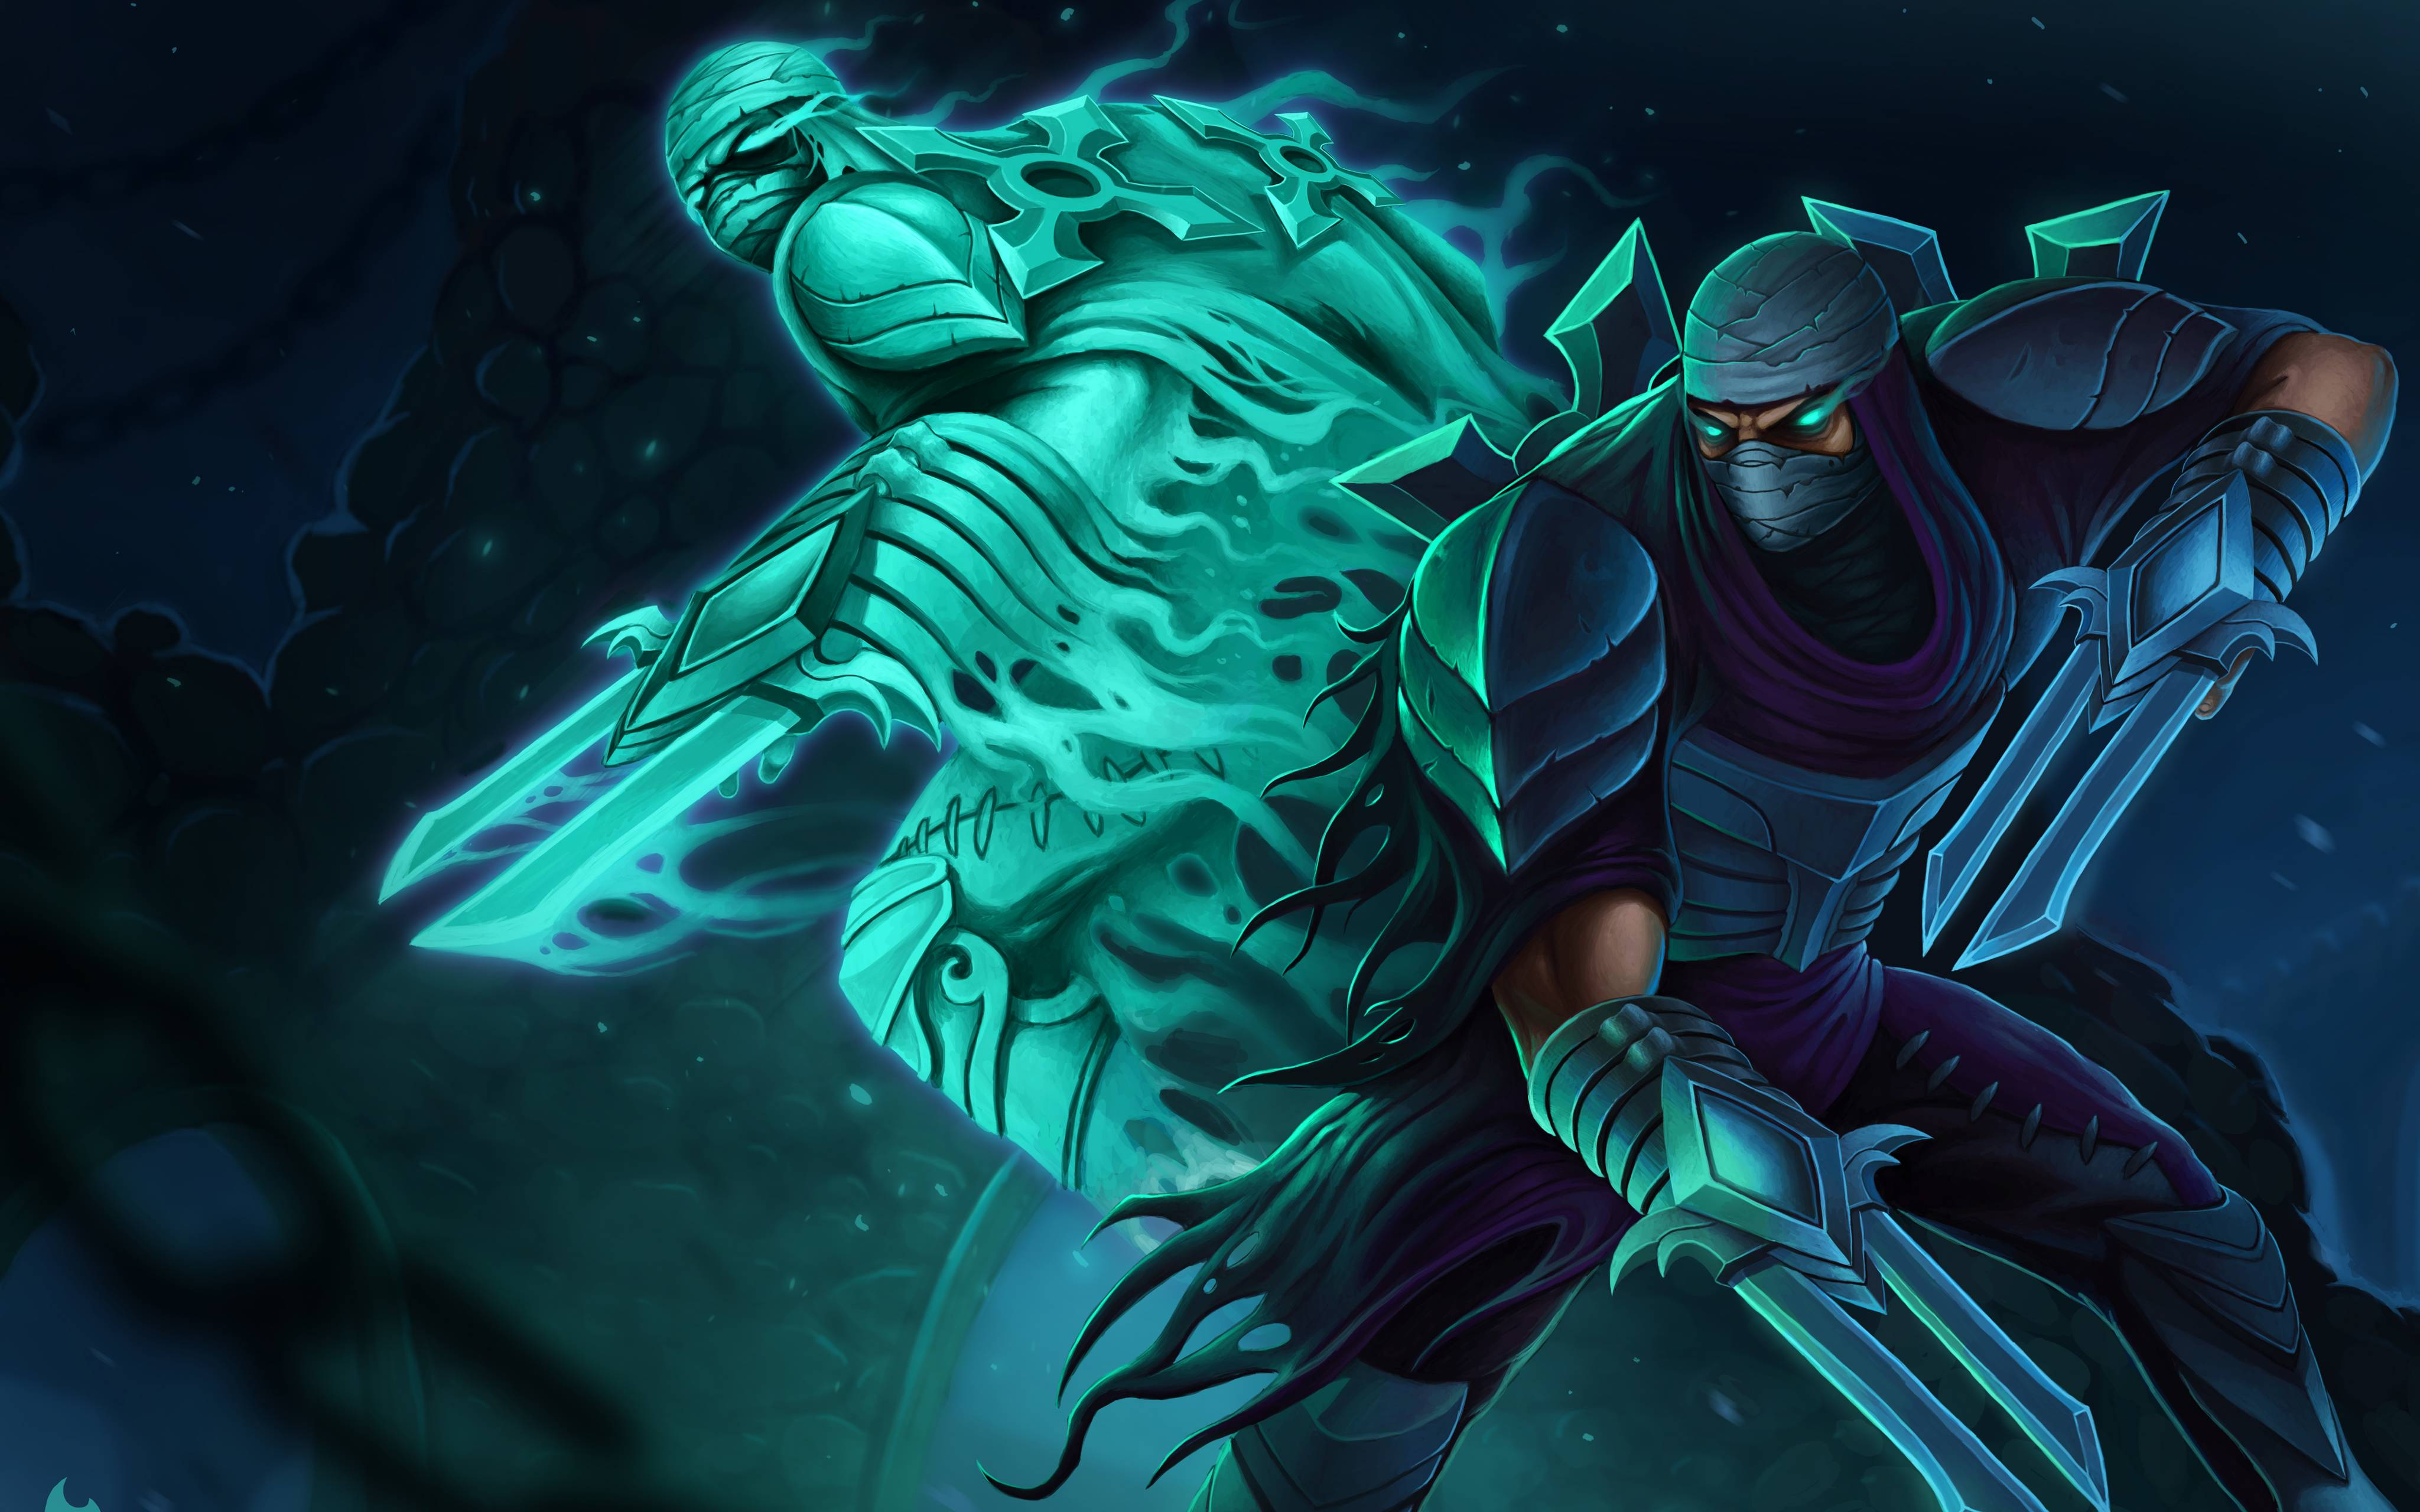 Zed Wallpapers Backgrounds Images Pictures League Of Legends Zed 4k 4096x2560 Wallpaper Teahub Io